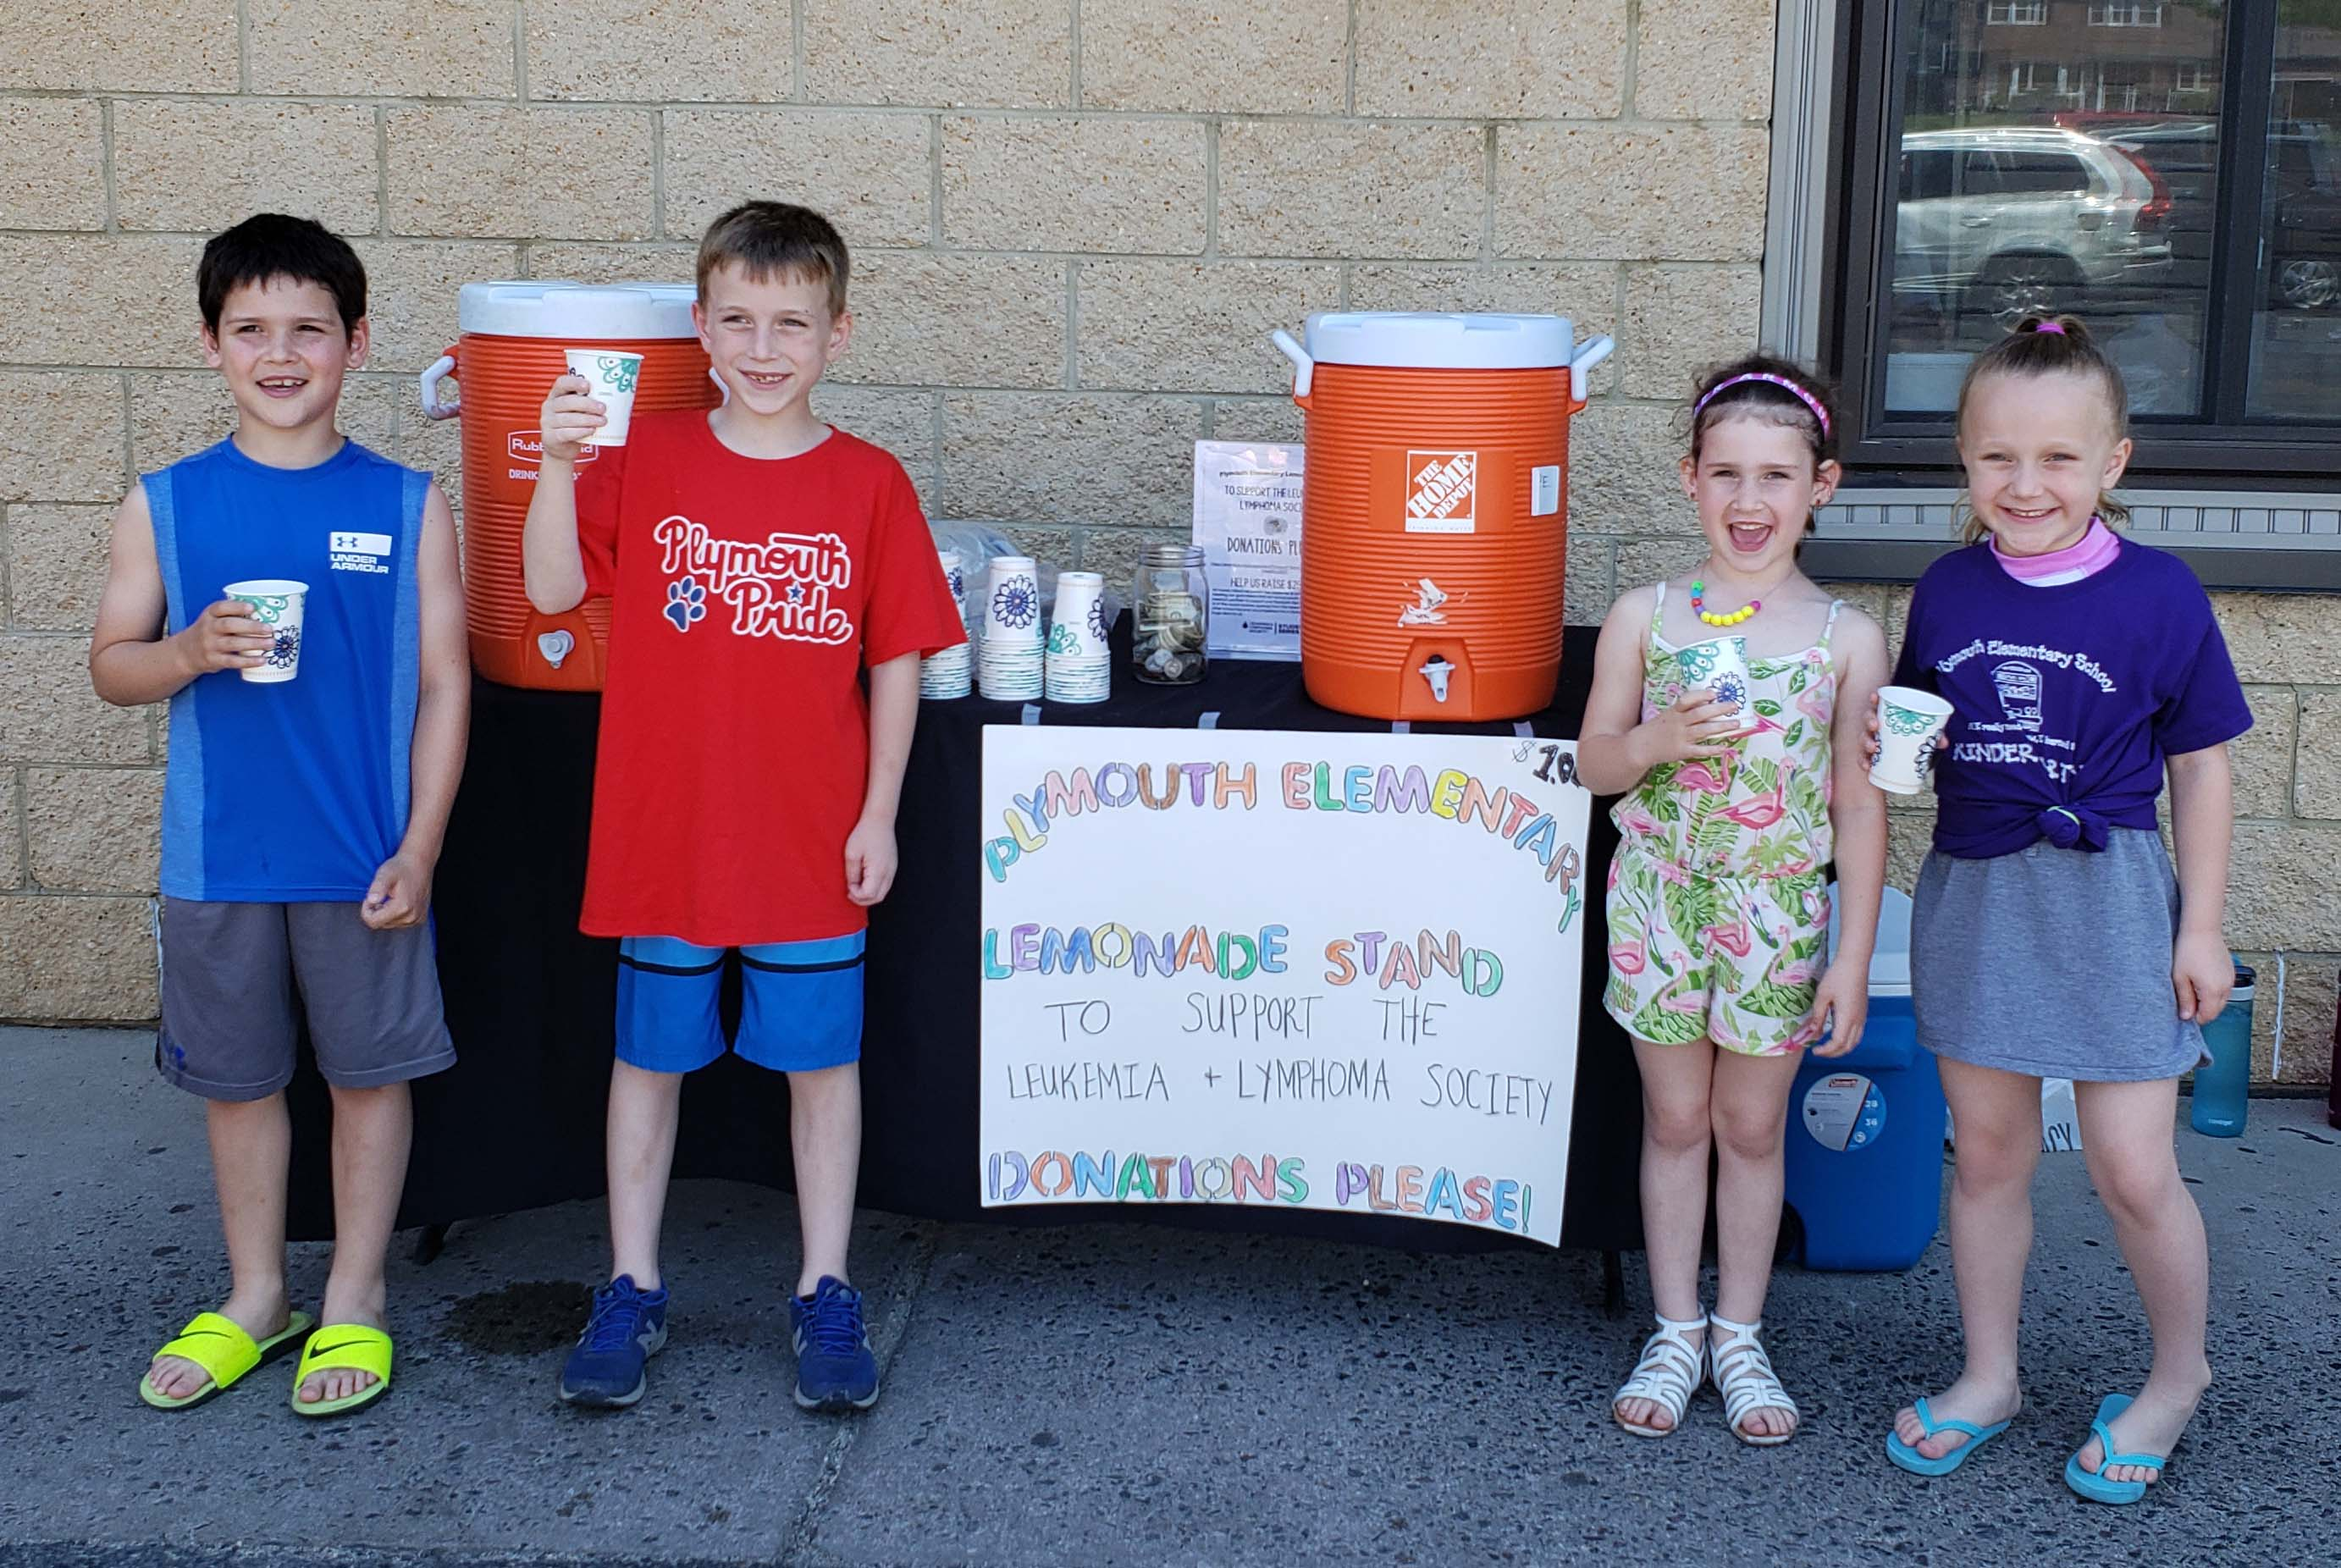 Four children at a lemonade stand